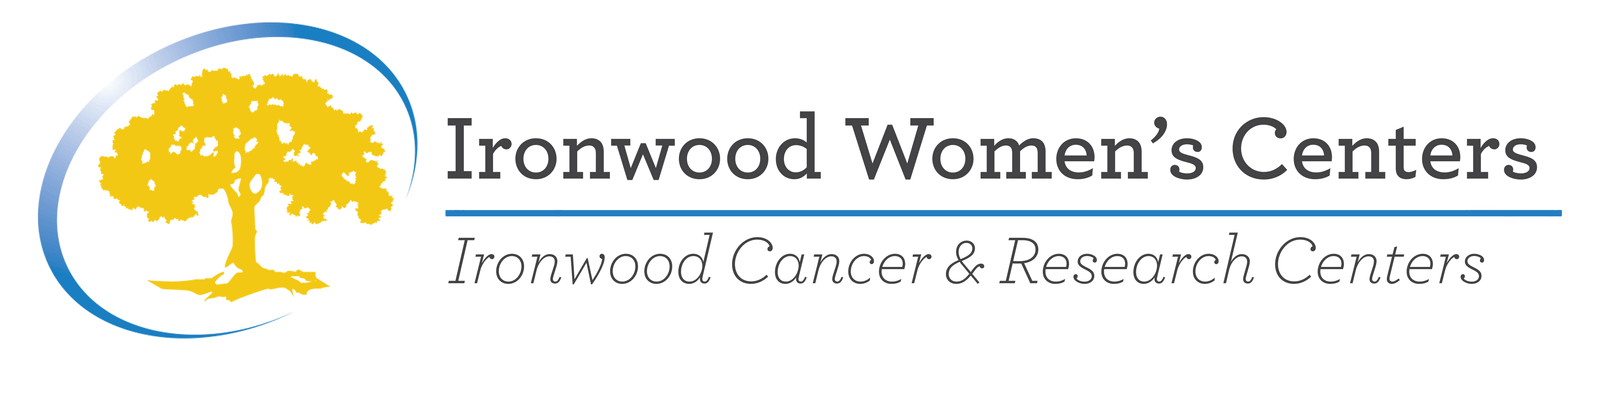 ironwood-womens-centers